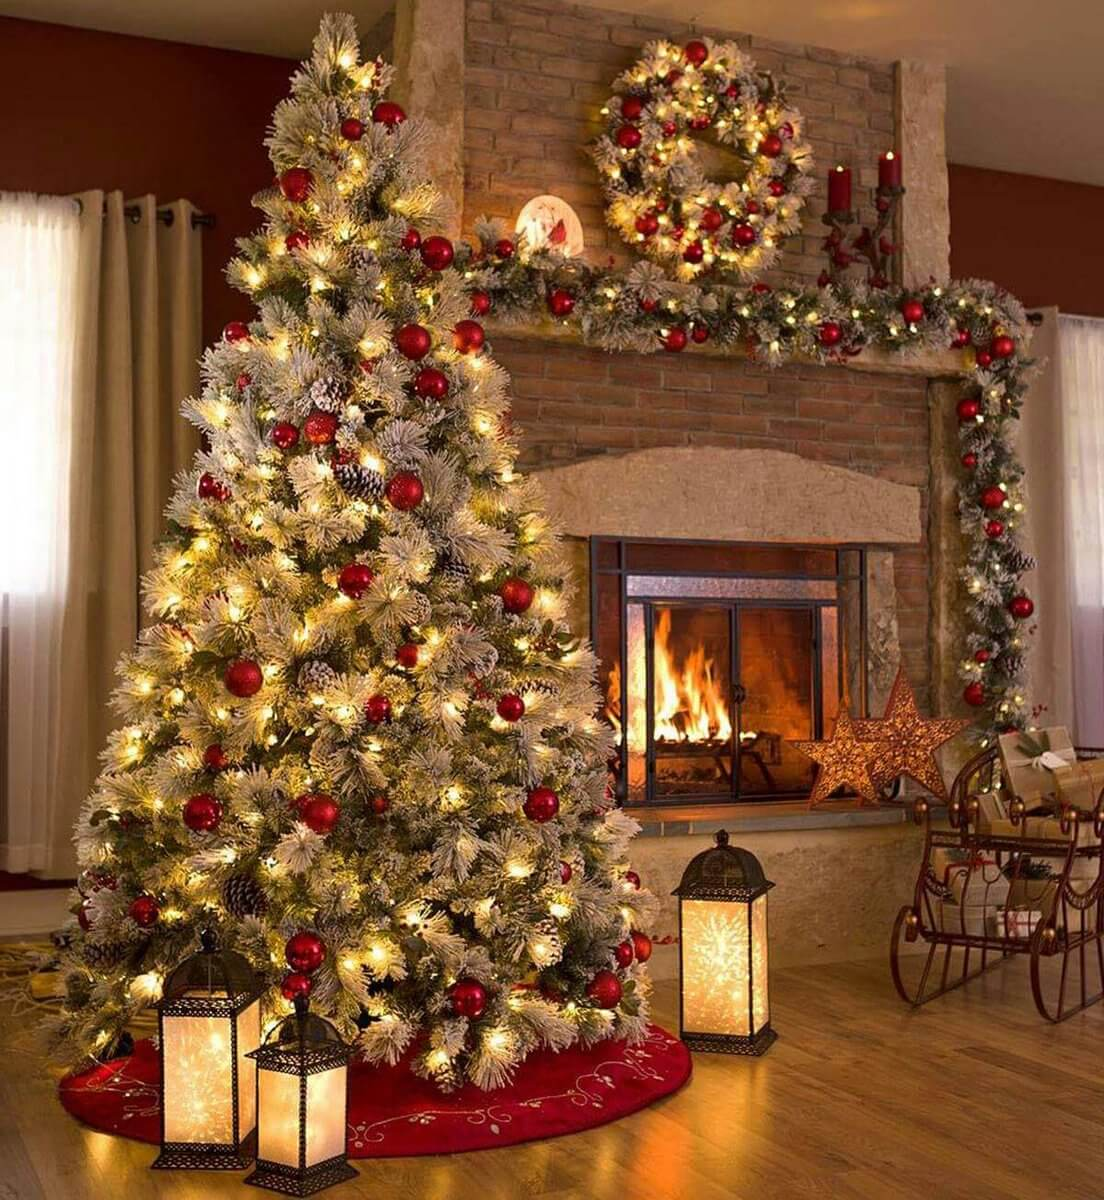 Qvc Home Decor How To Decorate Your House For Christmas Without A Tree